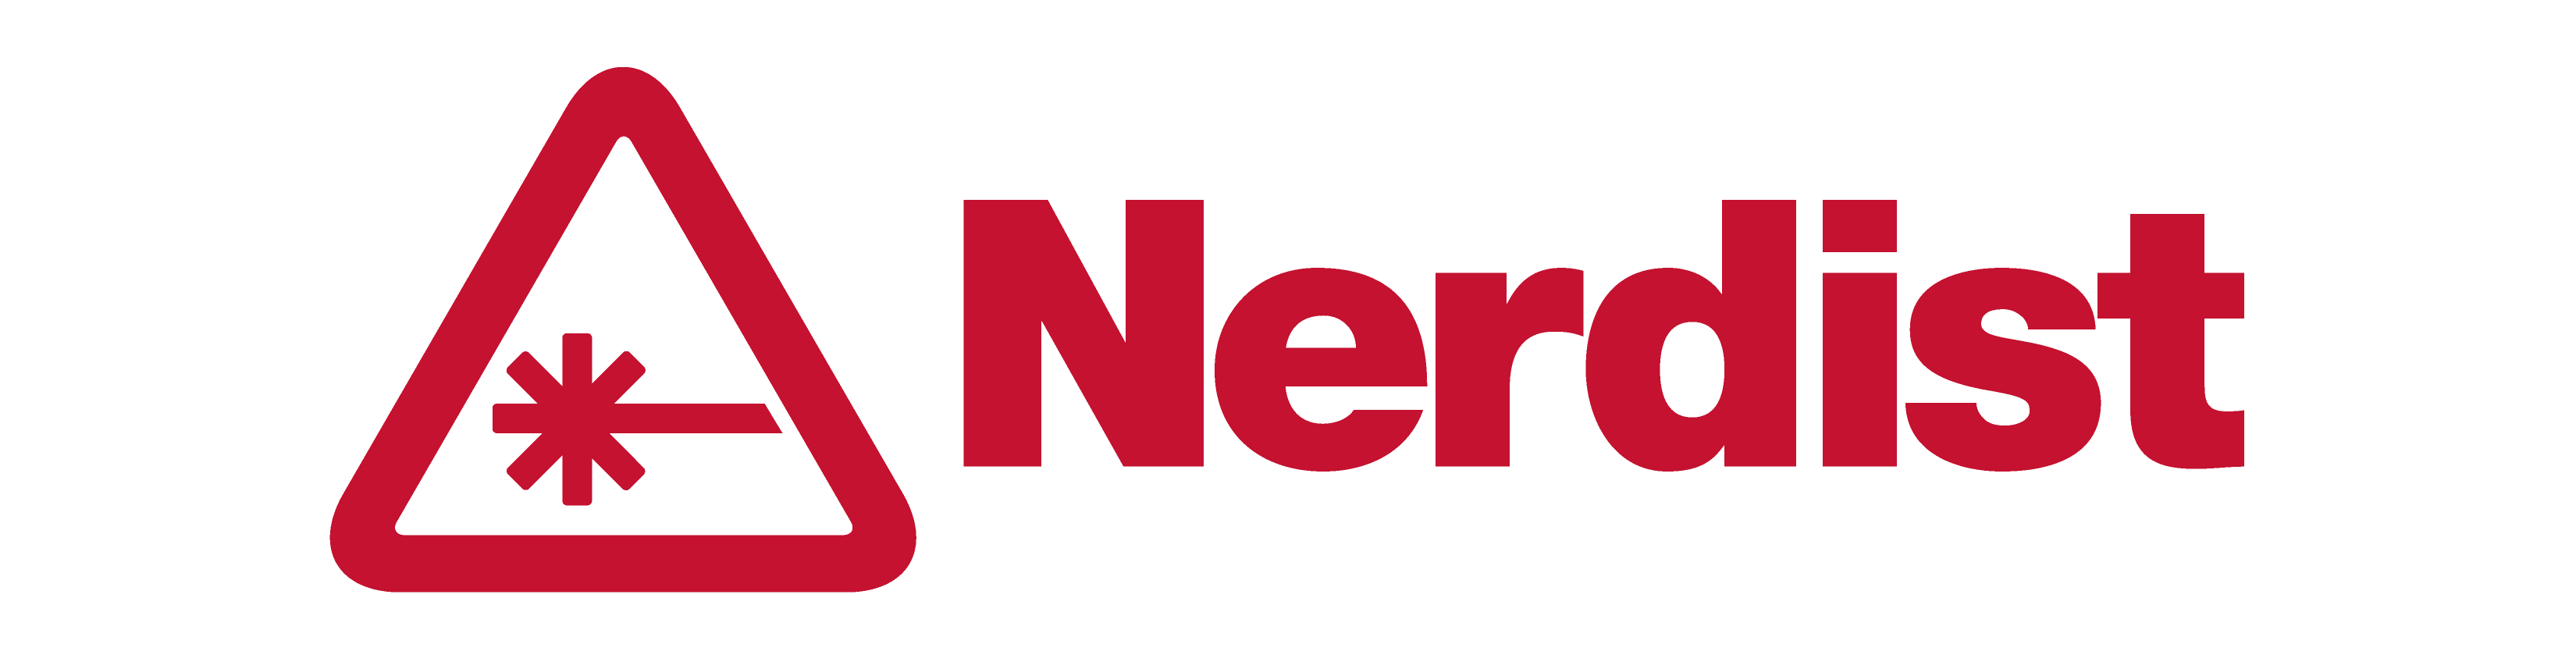 Nerdist_Logo_Horizontal_Red-2